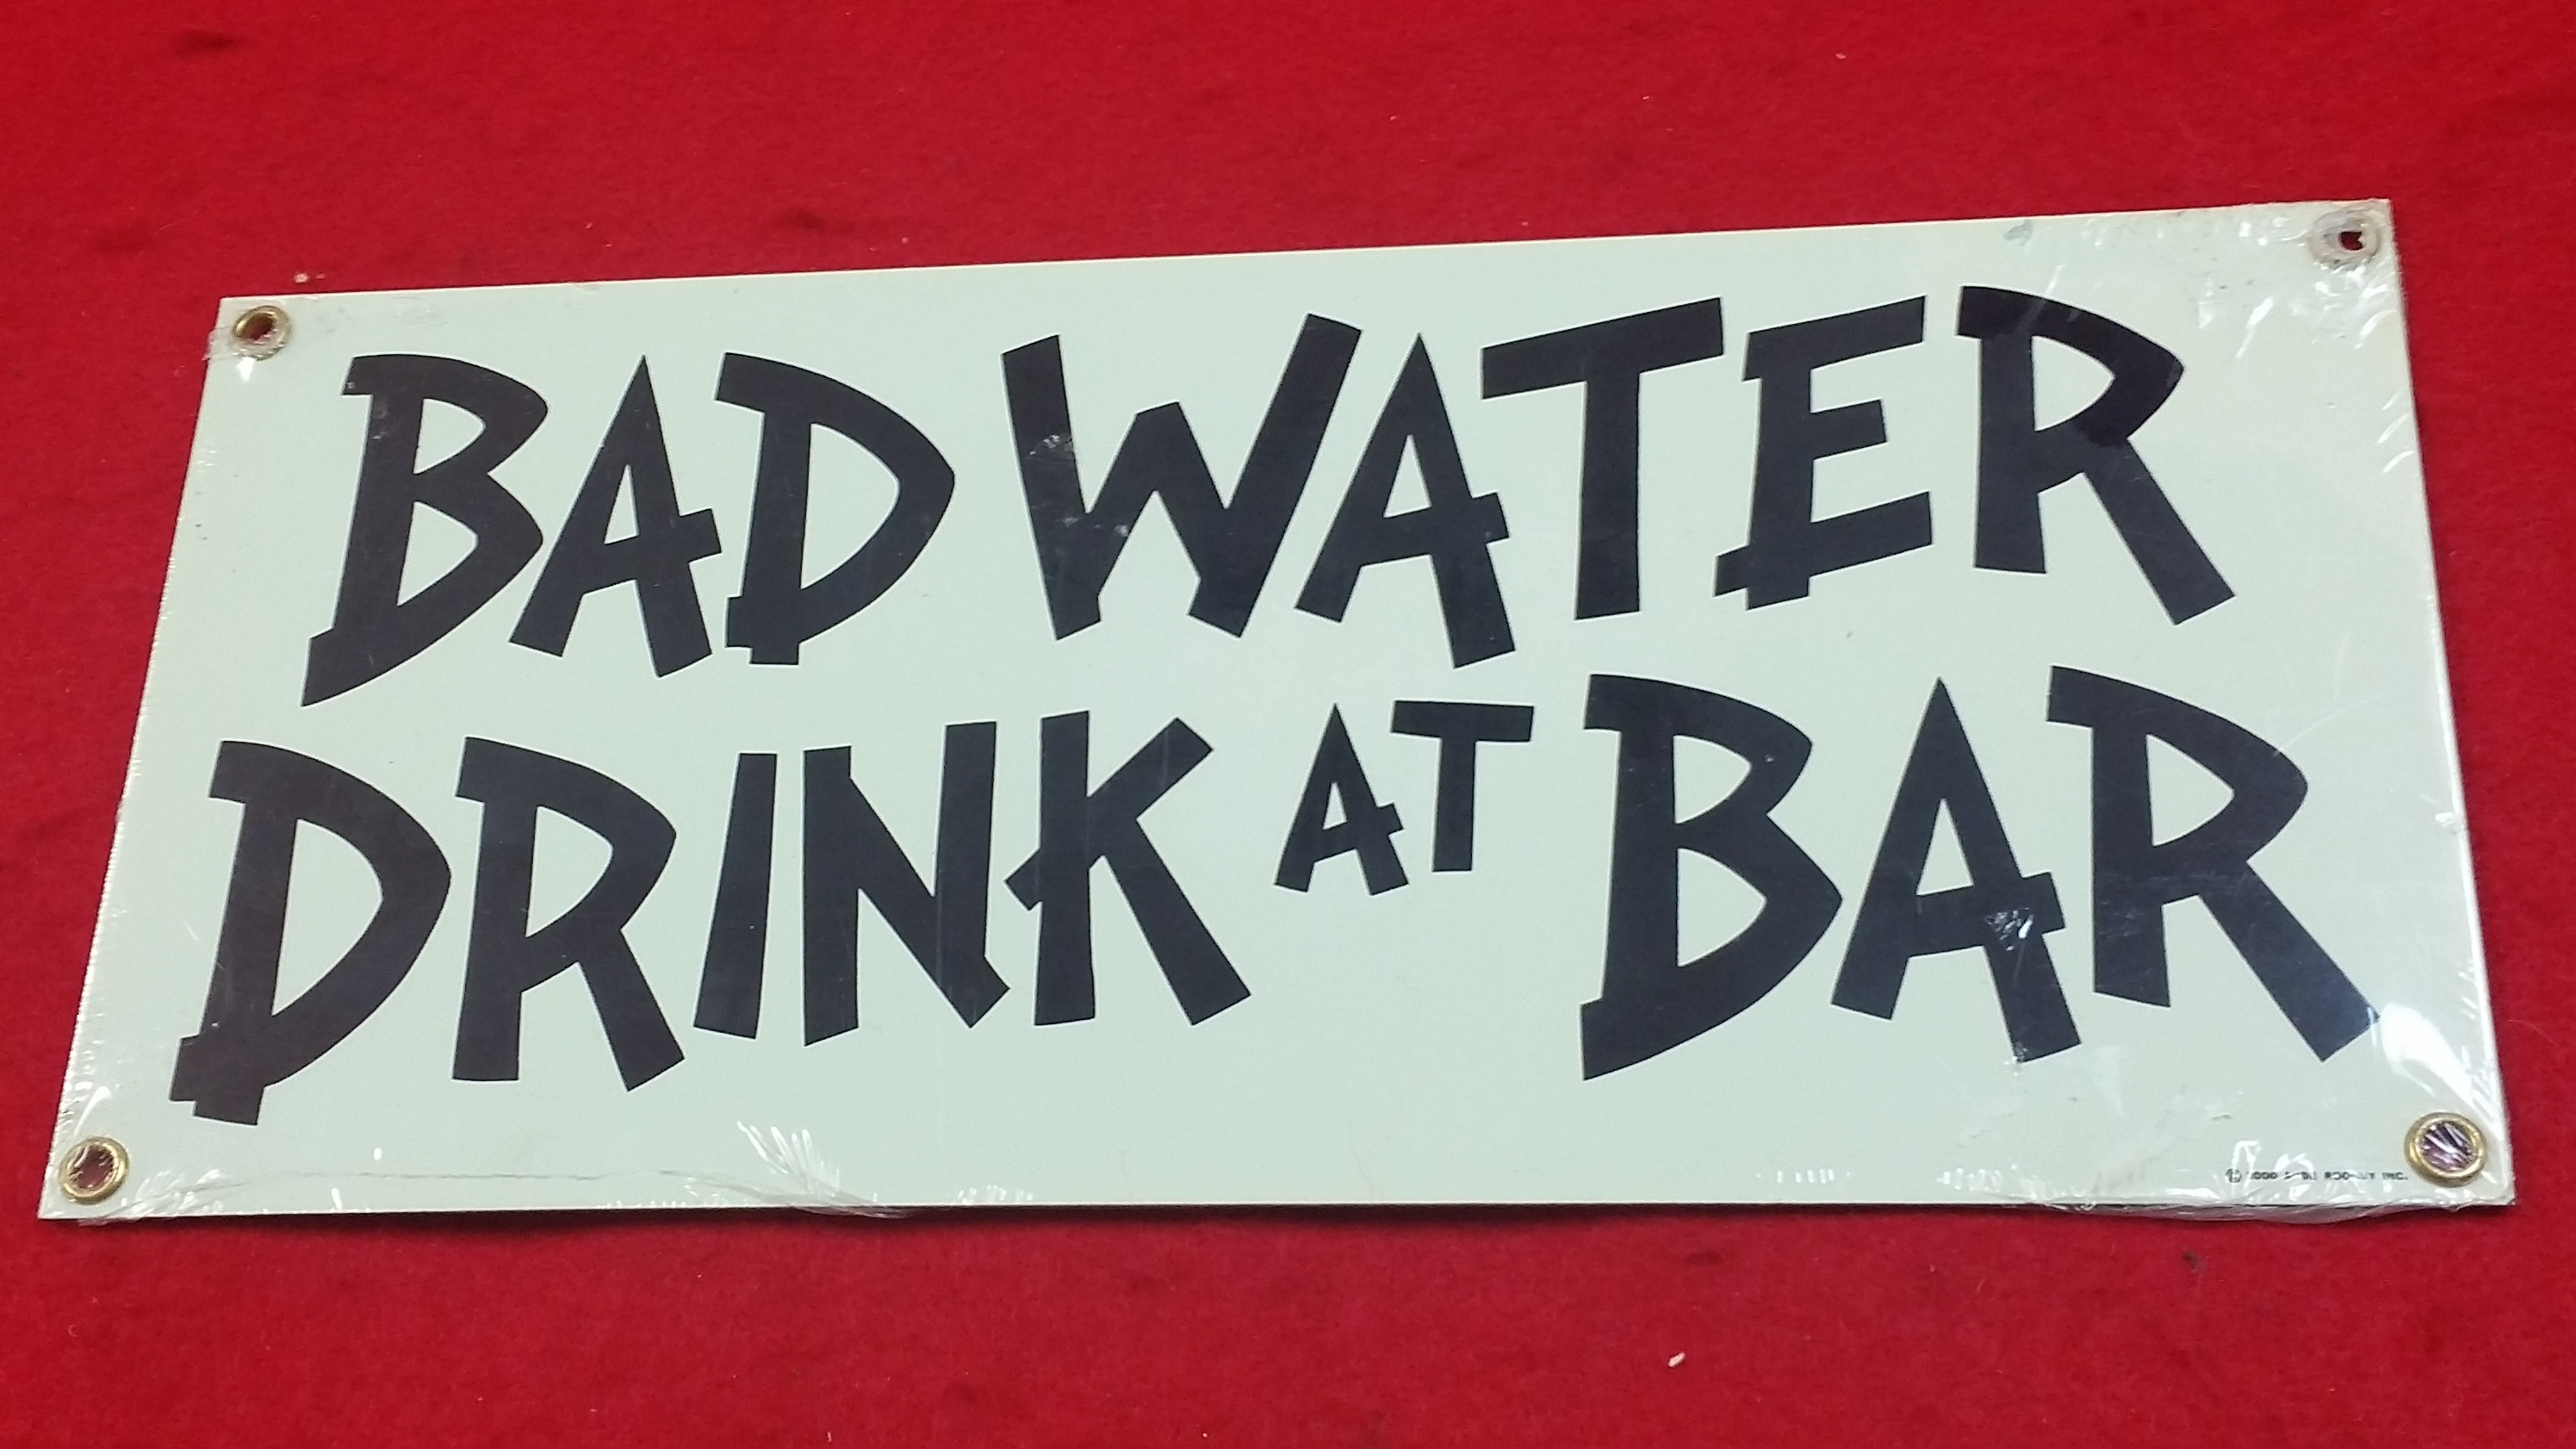 VINTAGE STYLE TIN SIGN - BAD WATER DRINK AT BAR - SIGN COLLECTIBLES